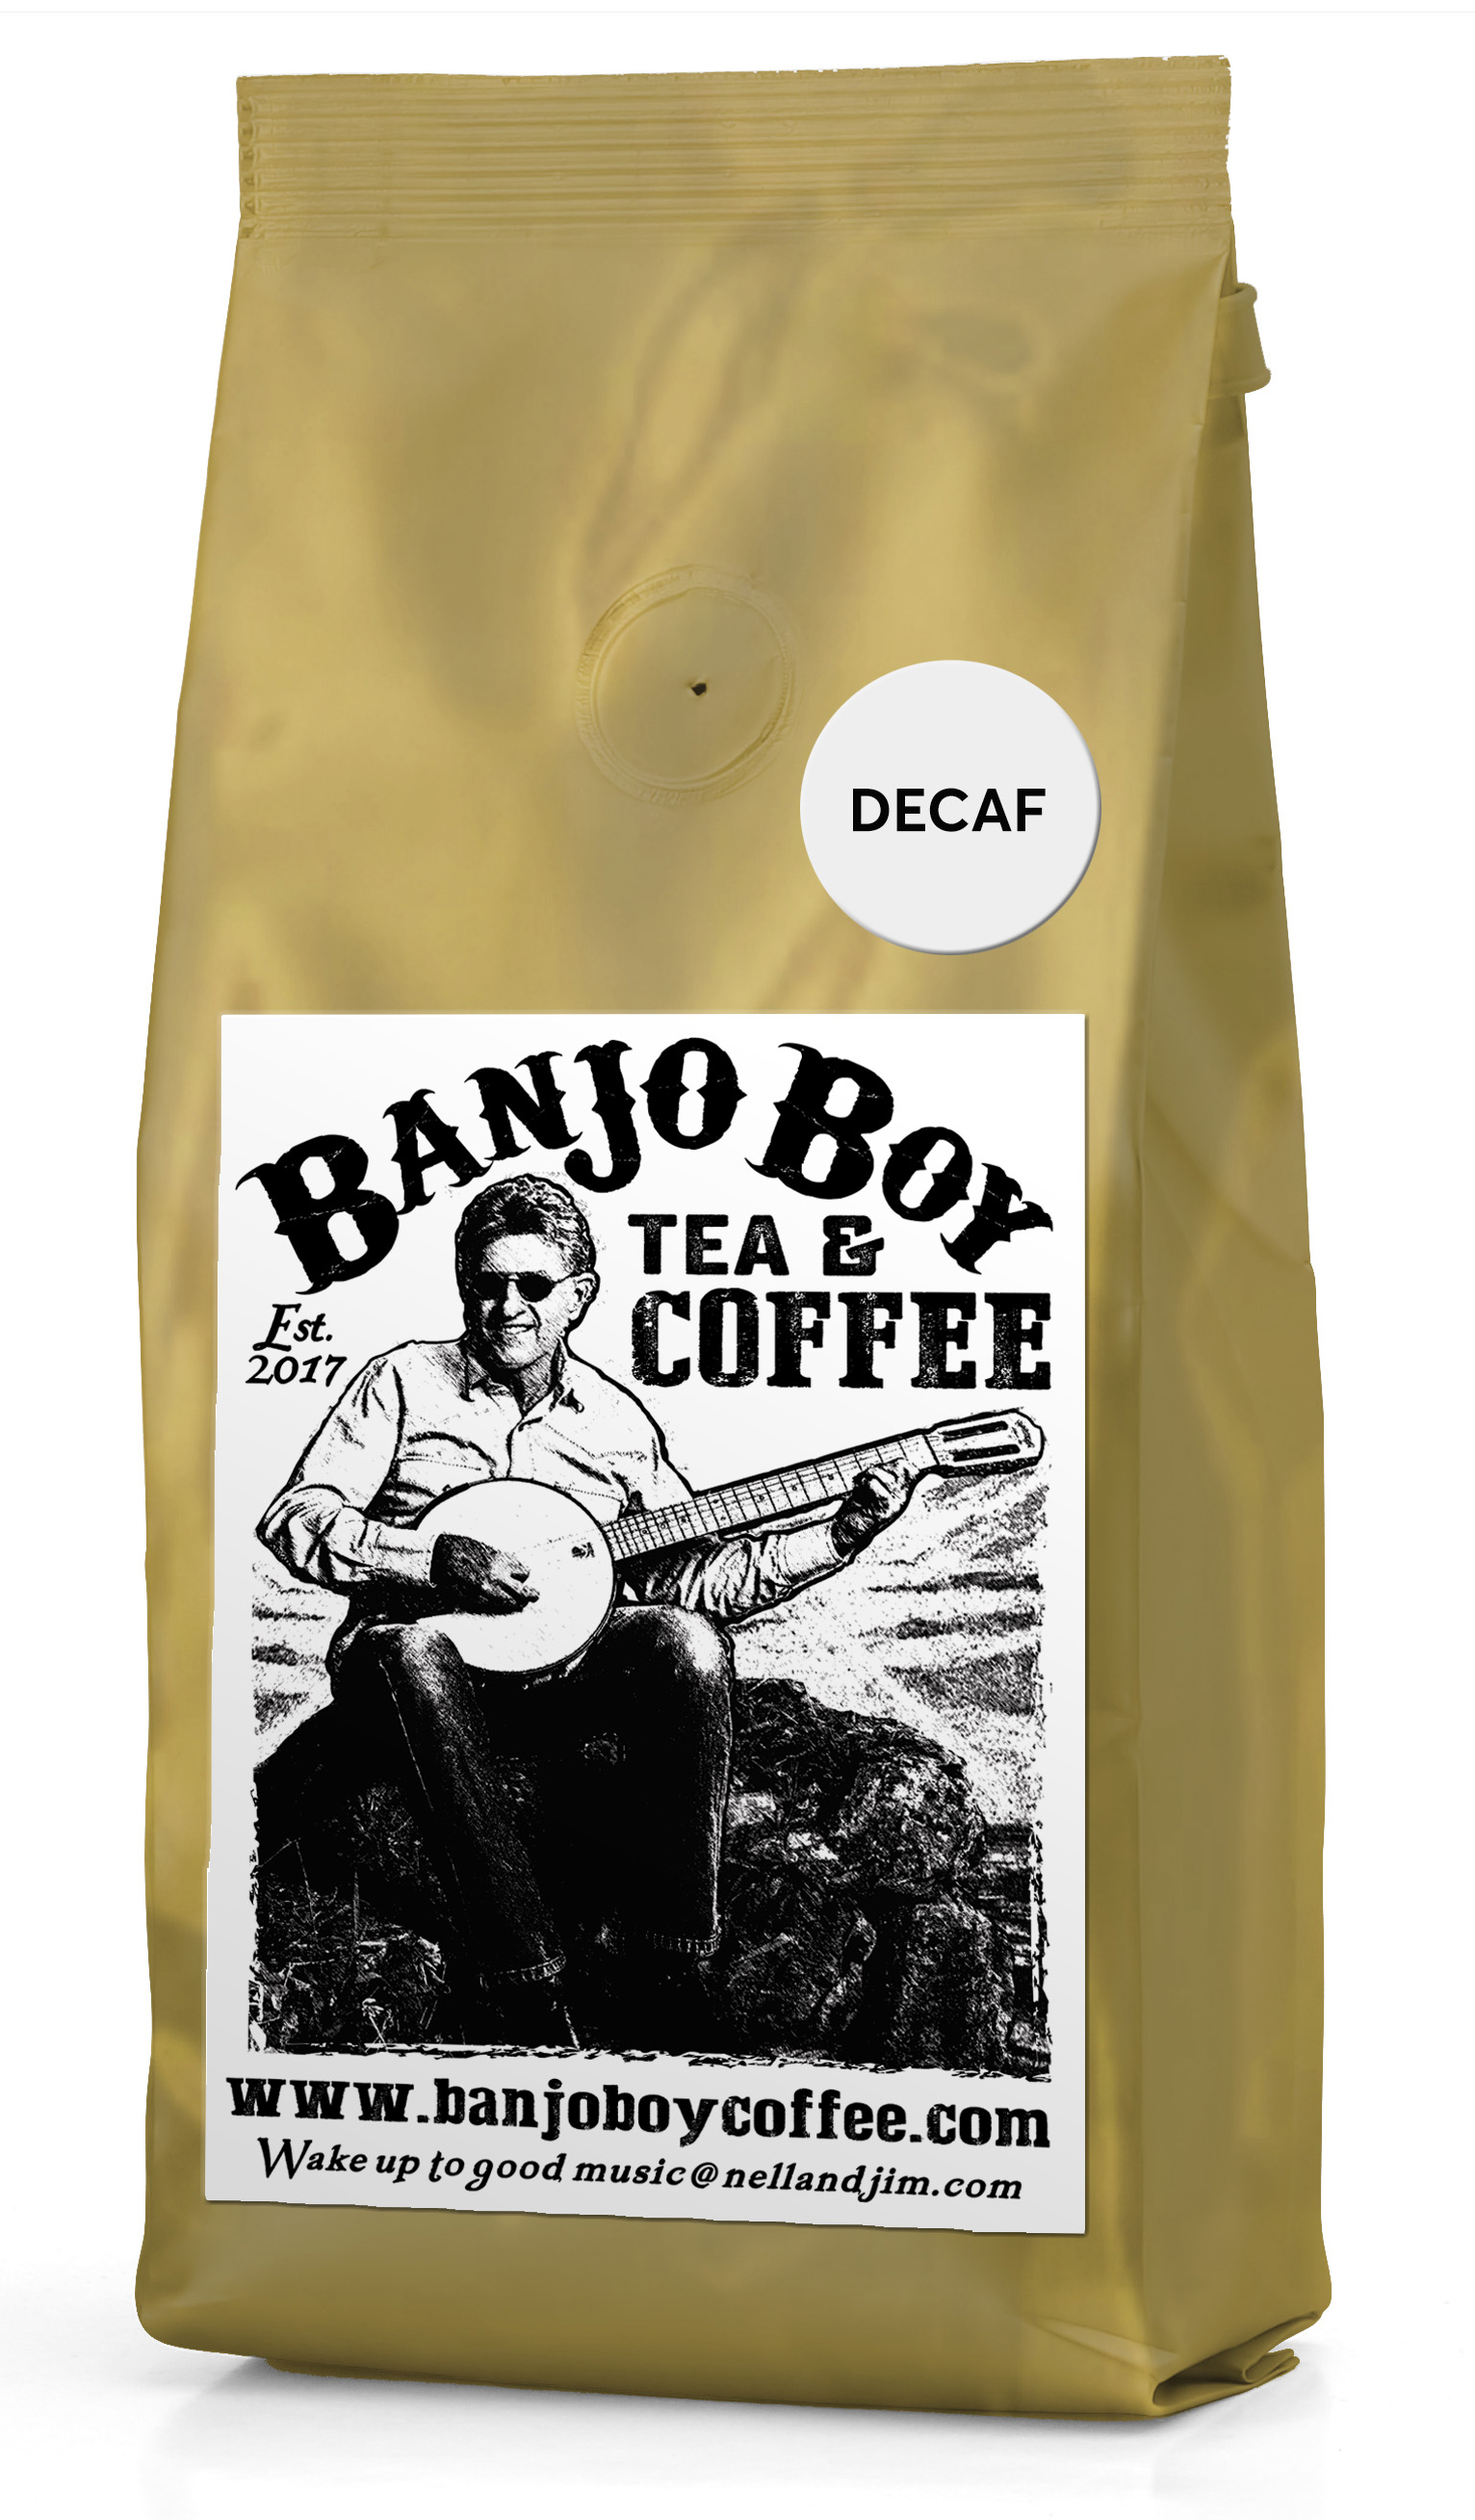 Decaf Blend - All of the same great quality and flavor but without the caffeine.